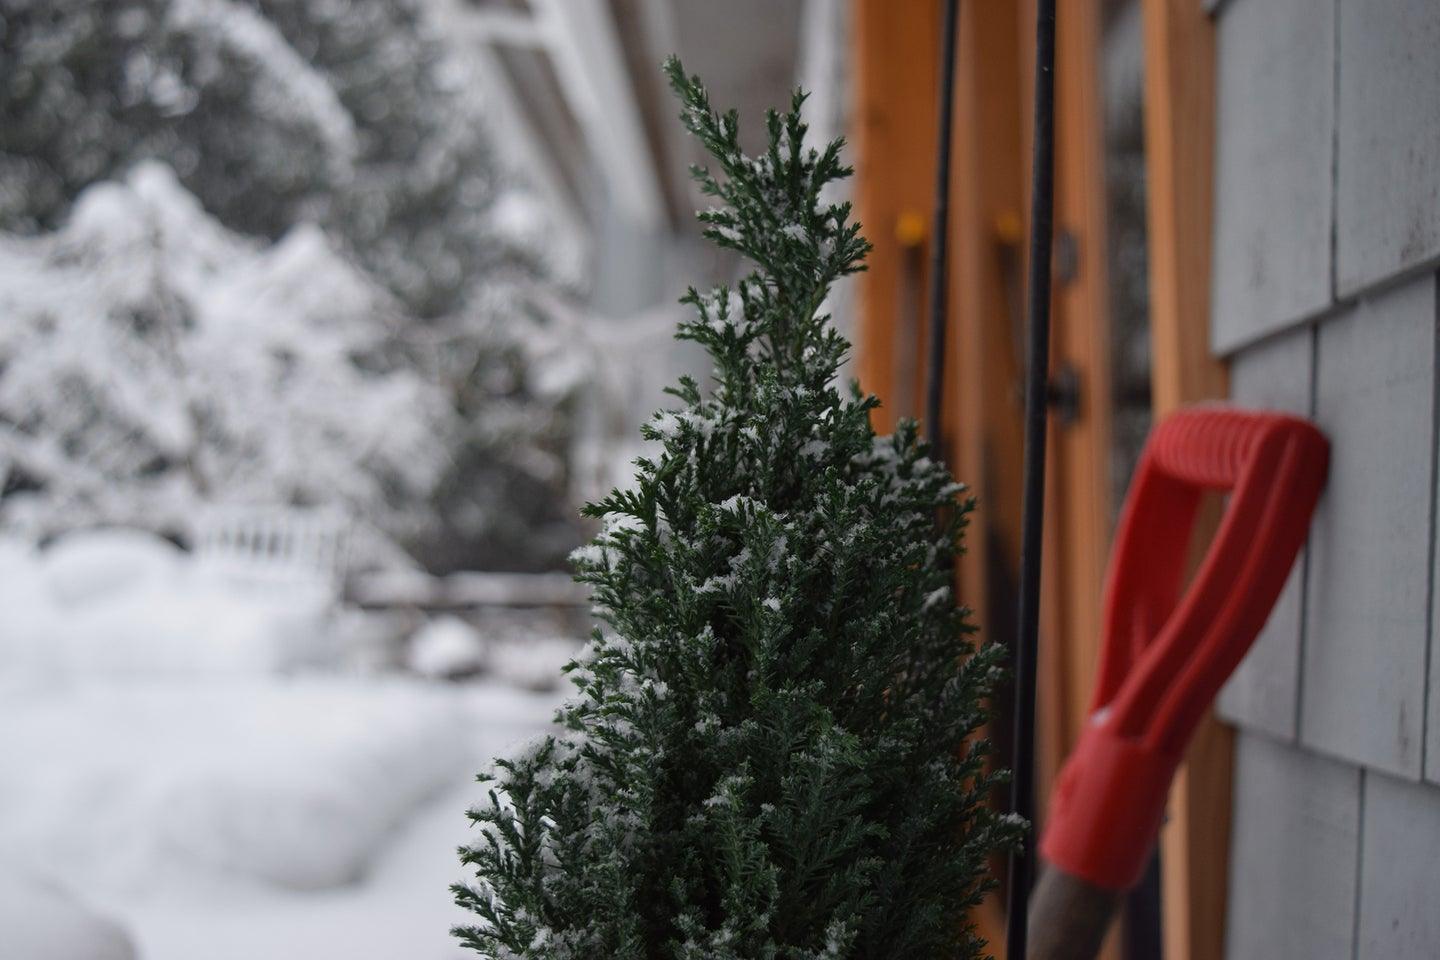 snow shovel and tree against a house with snow in the background